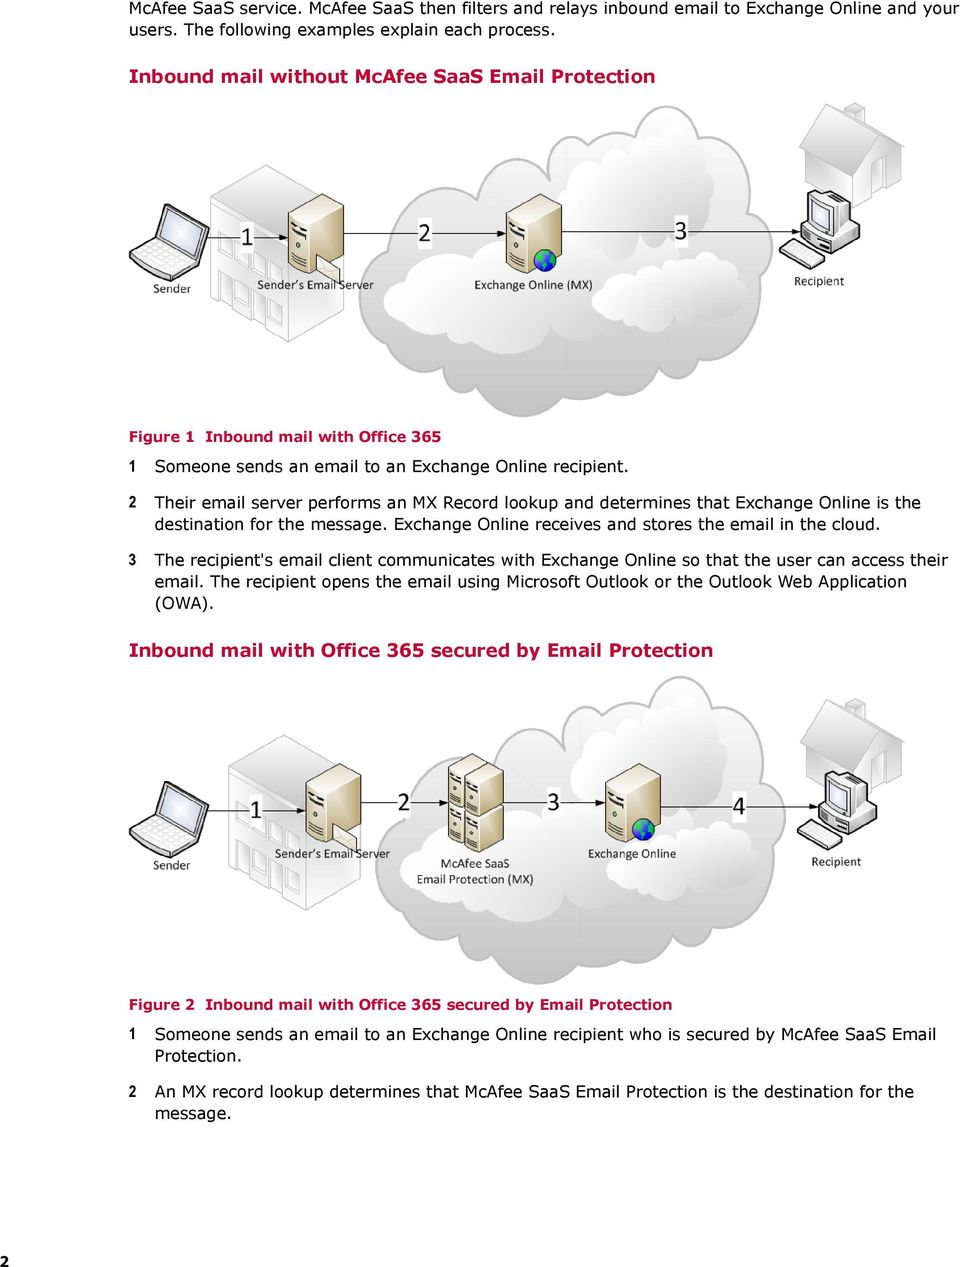 2 Their email server performs an MX Record lookup and determines that Exchange Online is the destination for the message. Exchange Online receives and stores the email in the cloud.